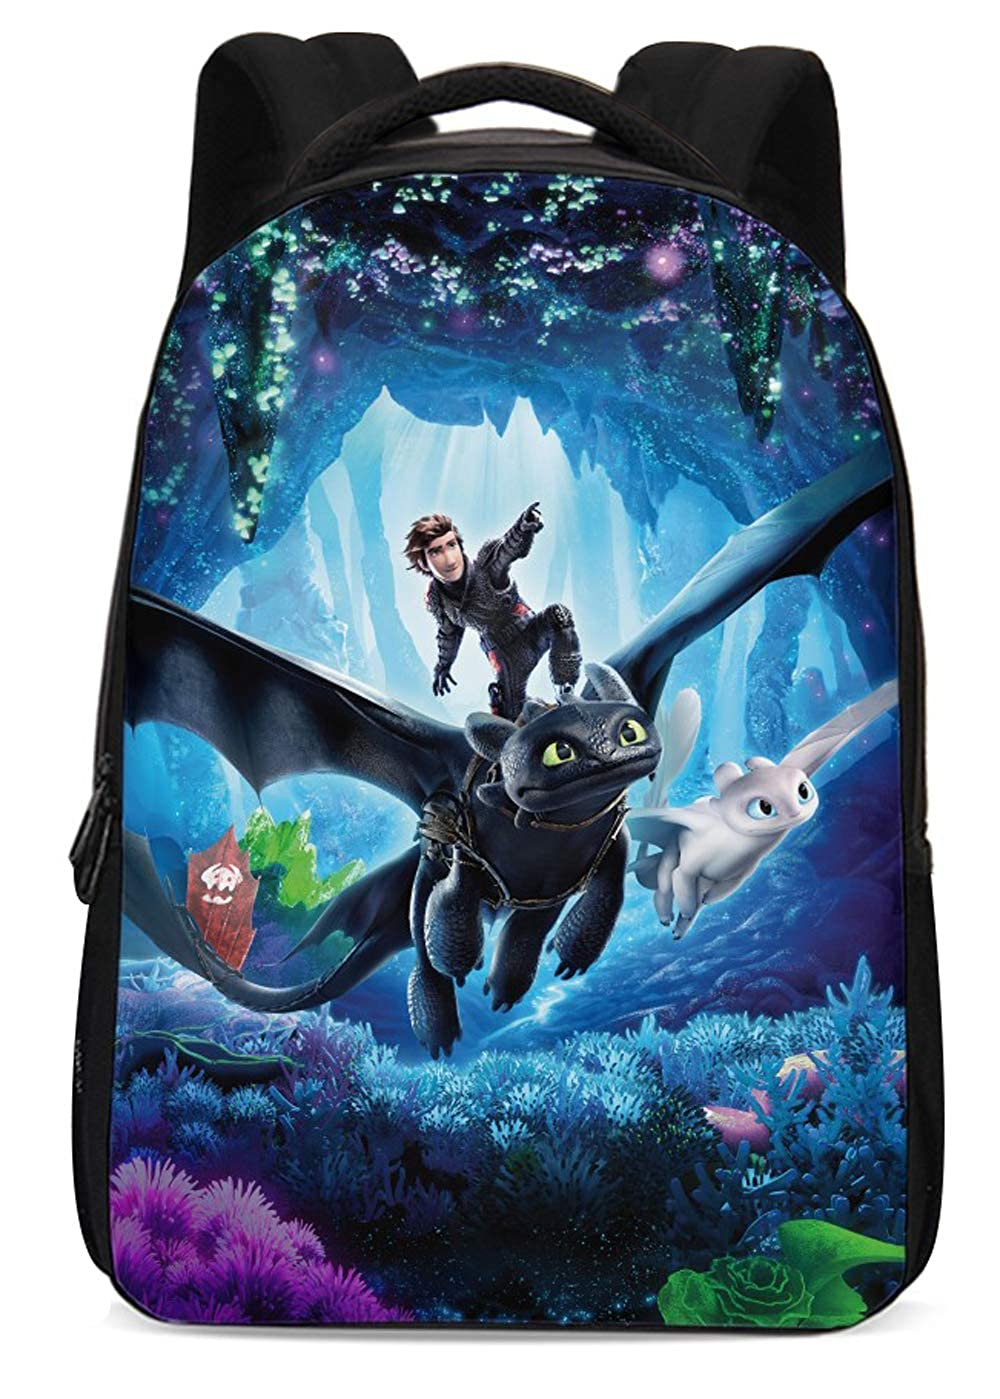 How to Train Your Dragon Backpack Hiccup Bags Night Fury Toothless Schoolbags for Men Boys Girls